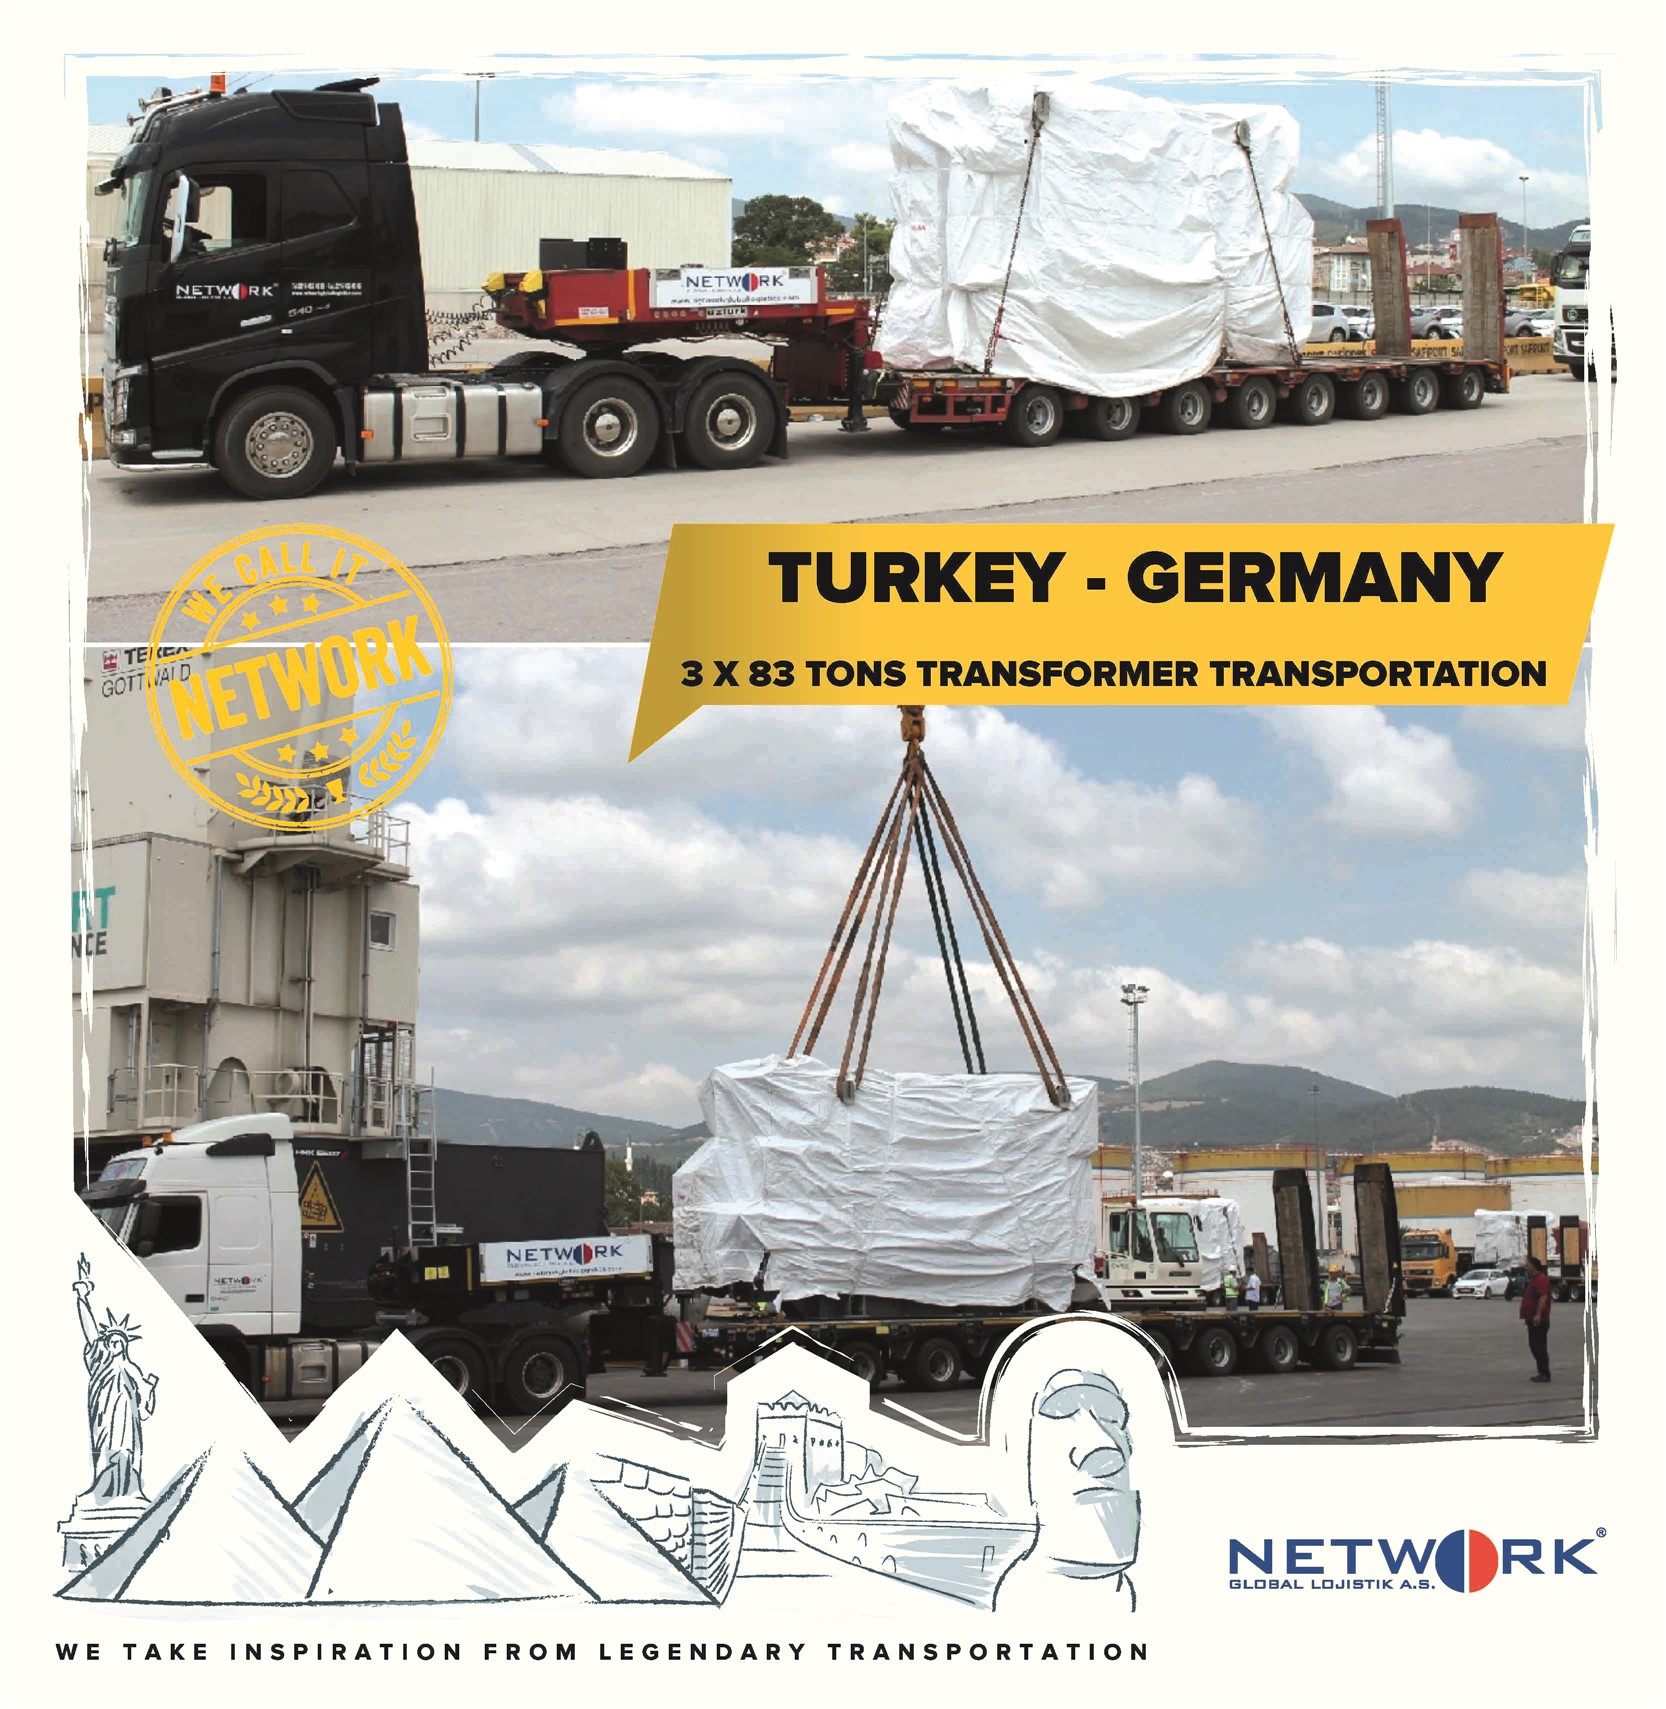 Turkey - Germany Transformer Transportation